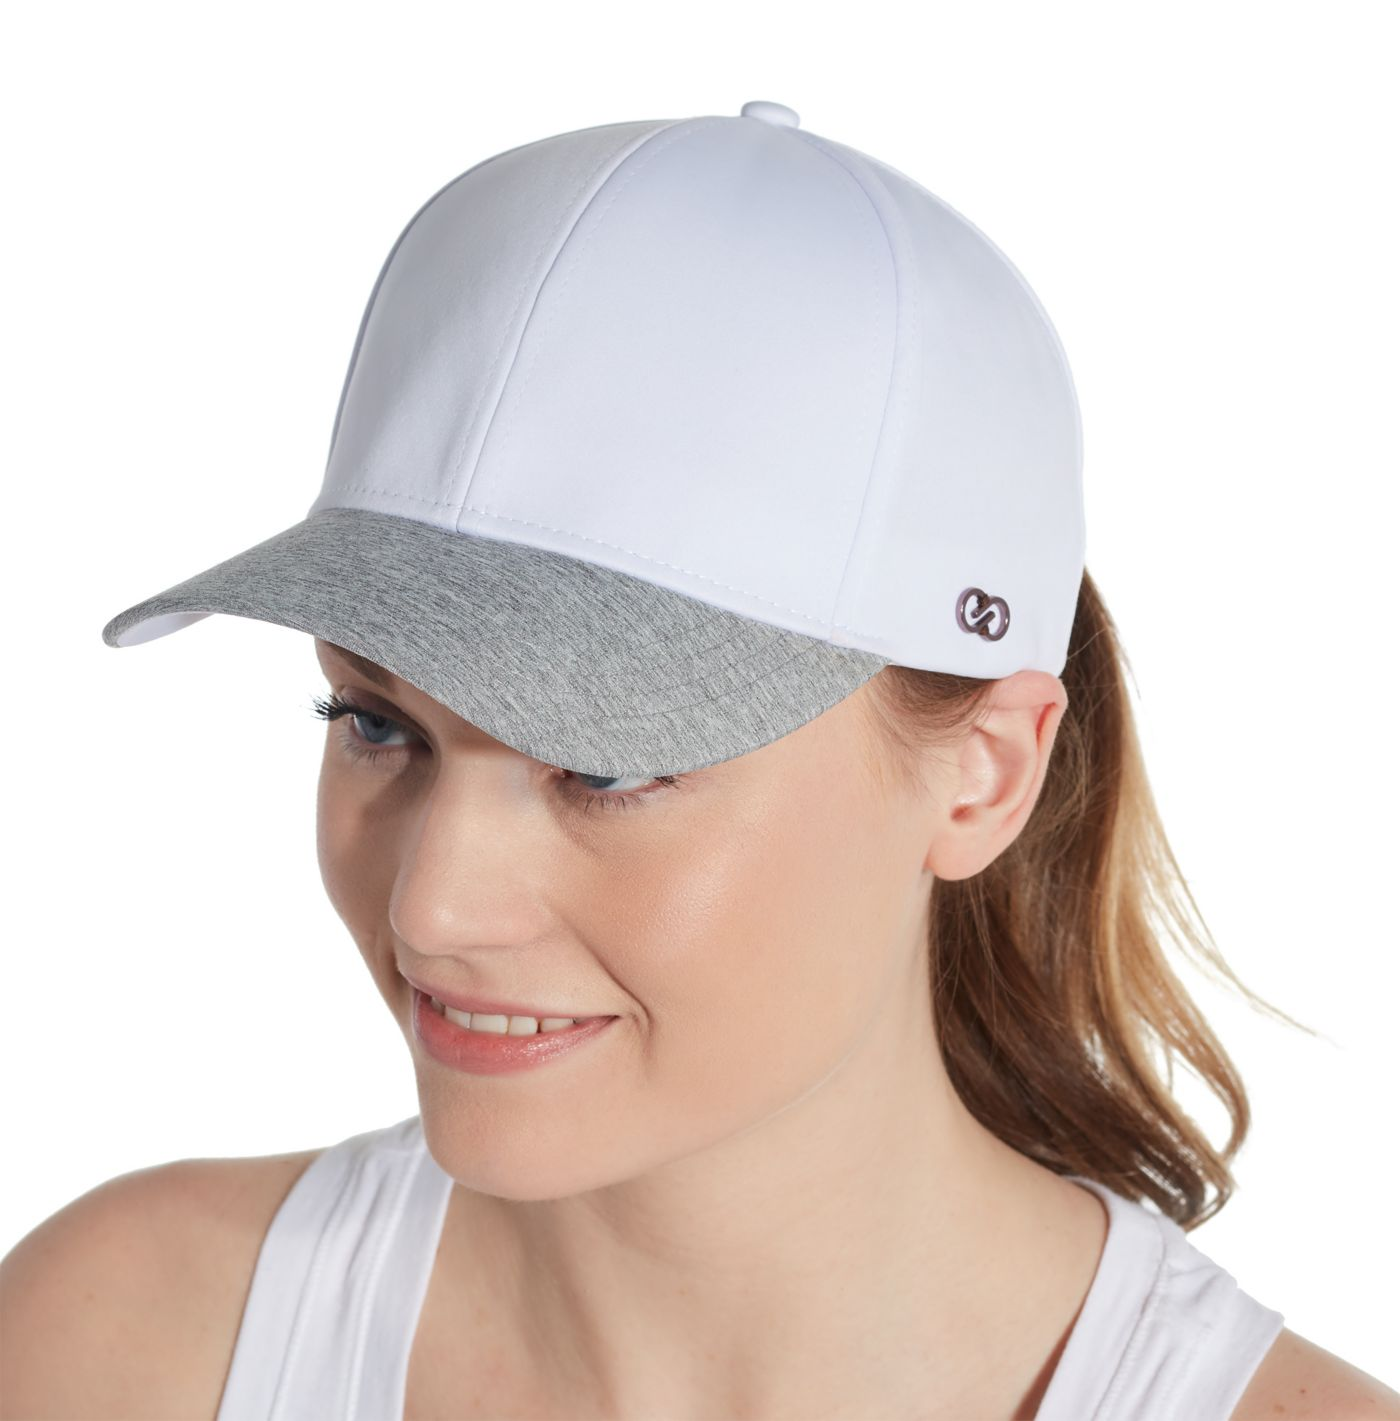 CALIA by Carrie Underwood Women's Speckled Visor Hat